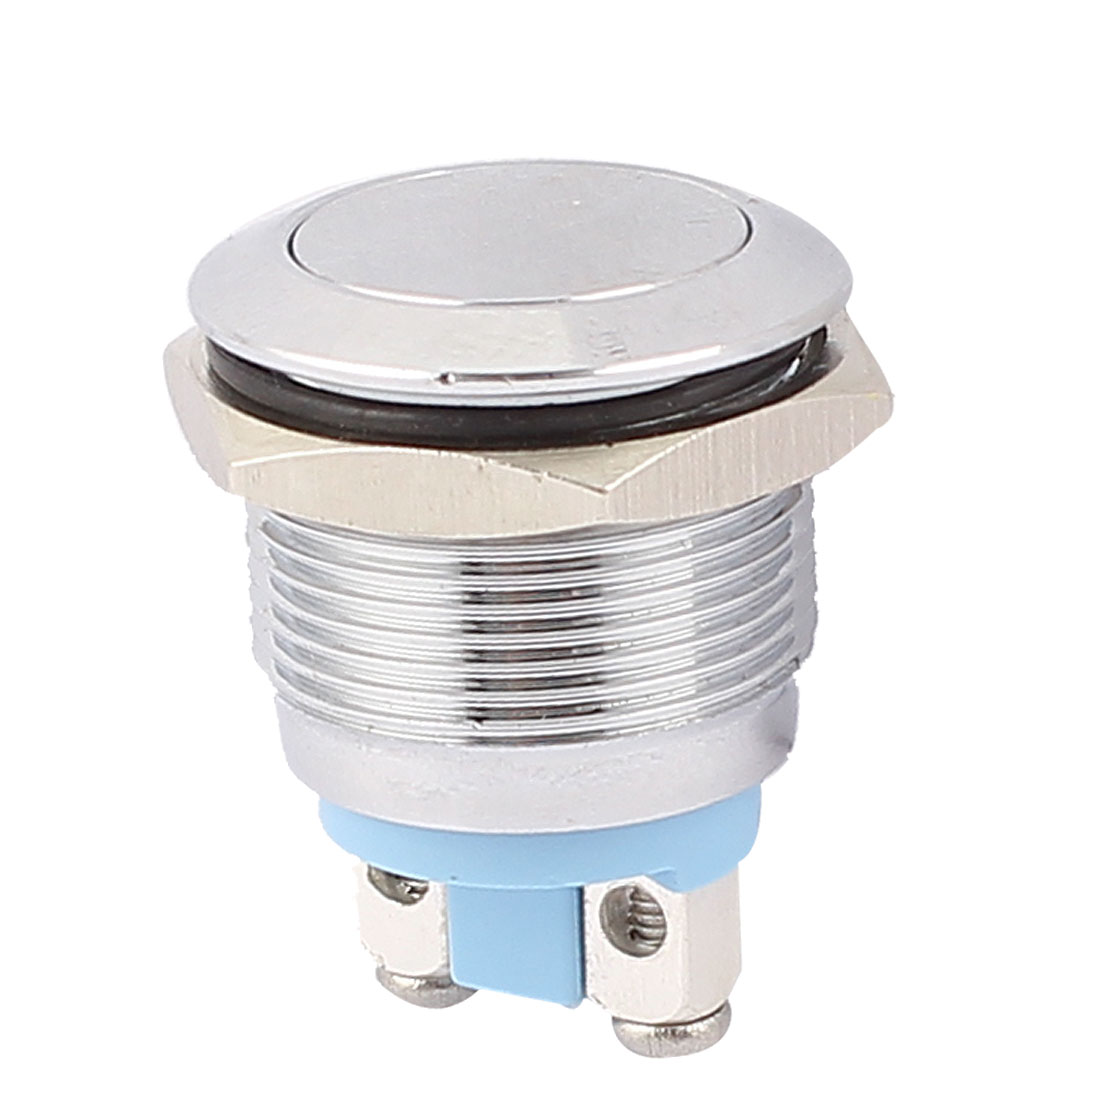 "0.75"" Mounted Thread 2 Pin SPST Flat Head Momentary Push Button Switch"